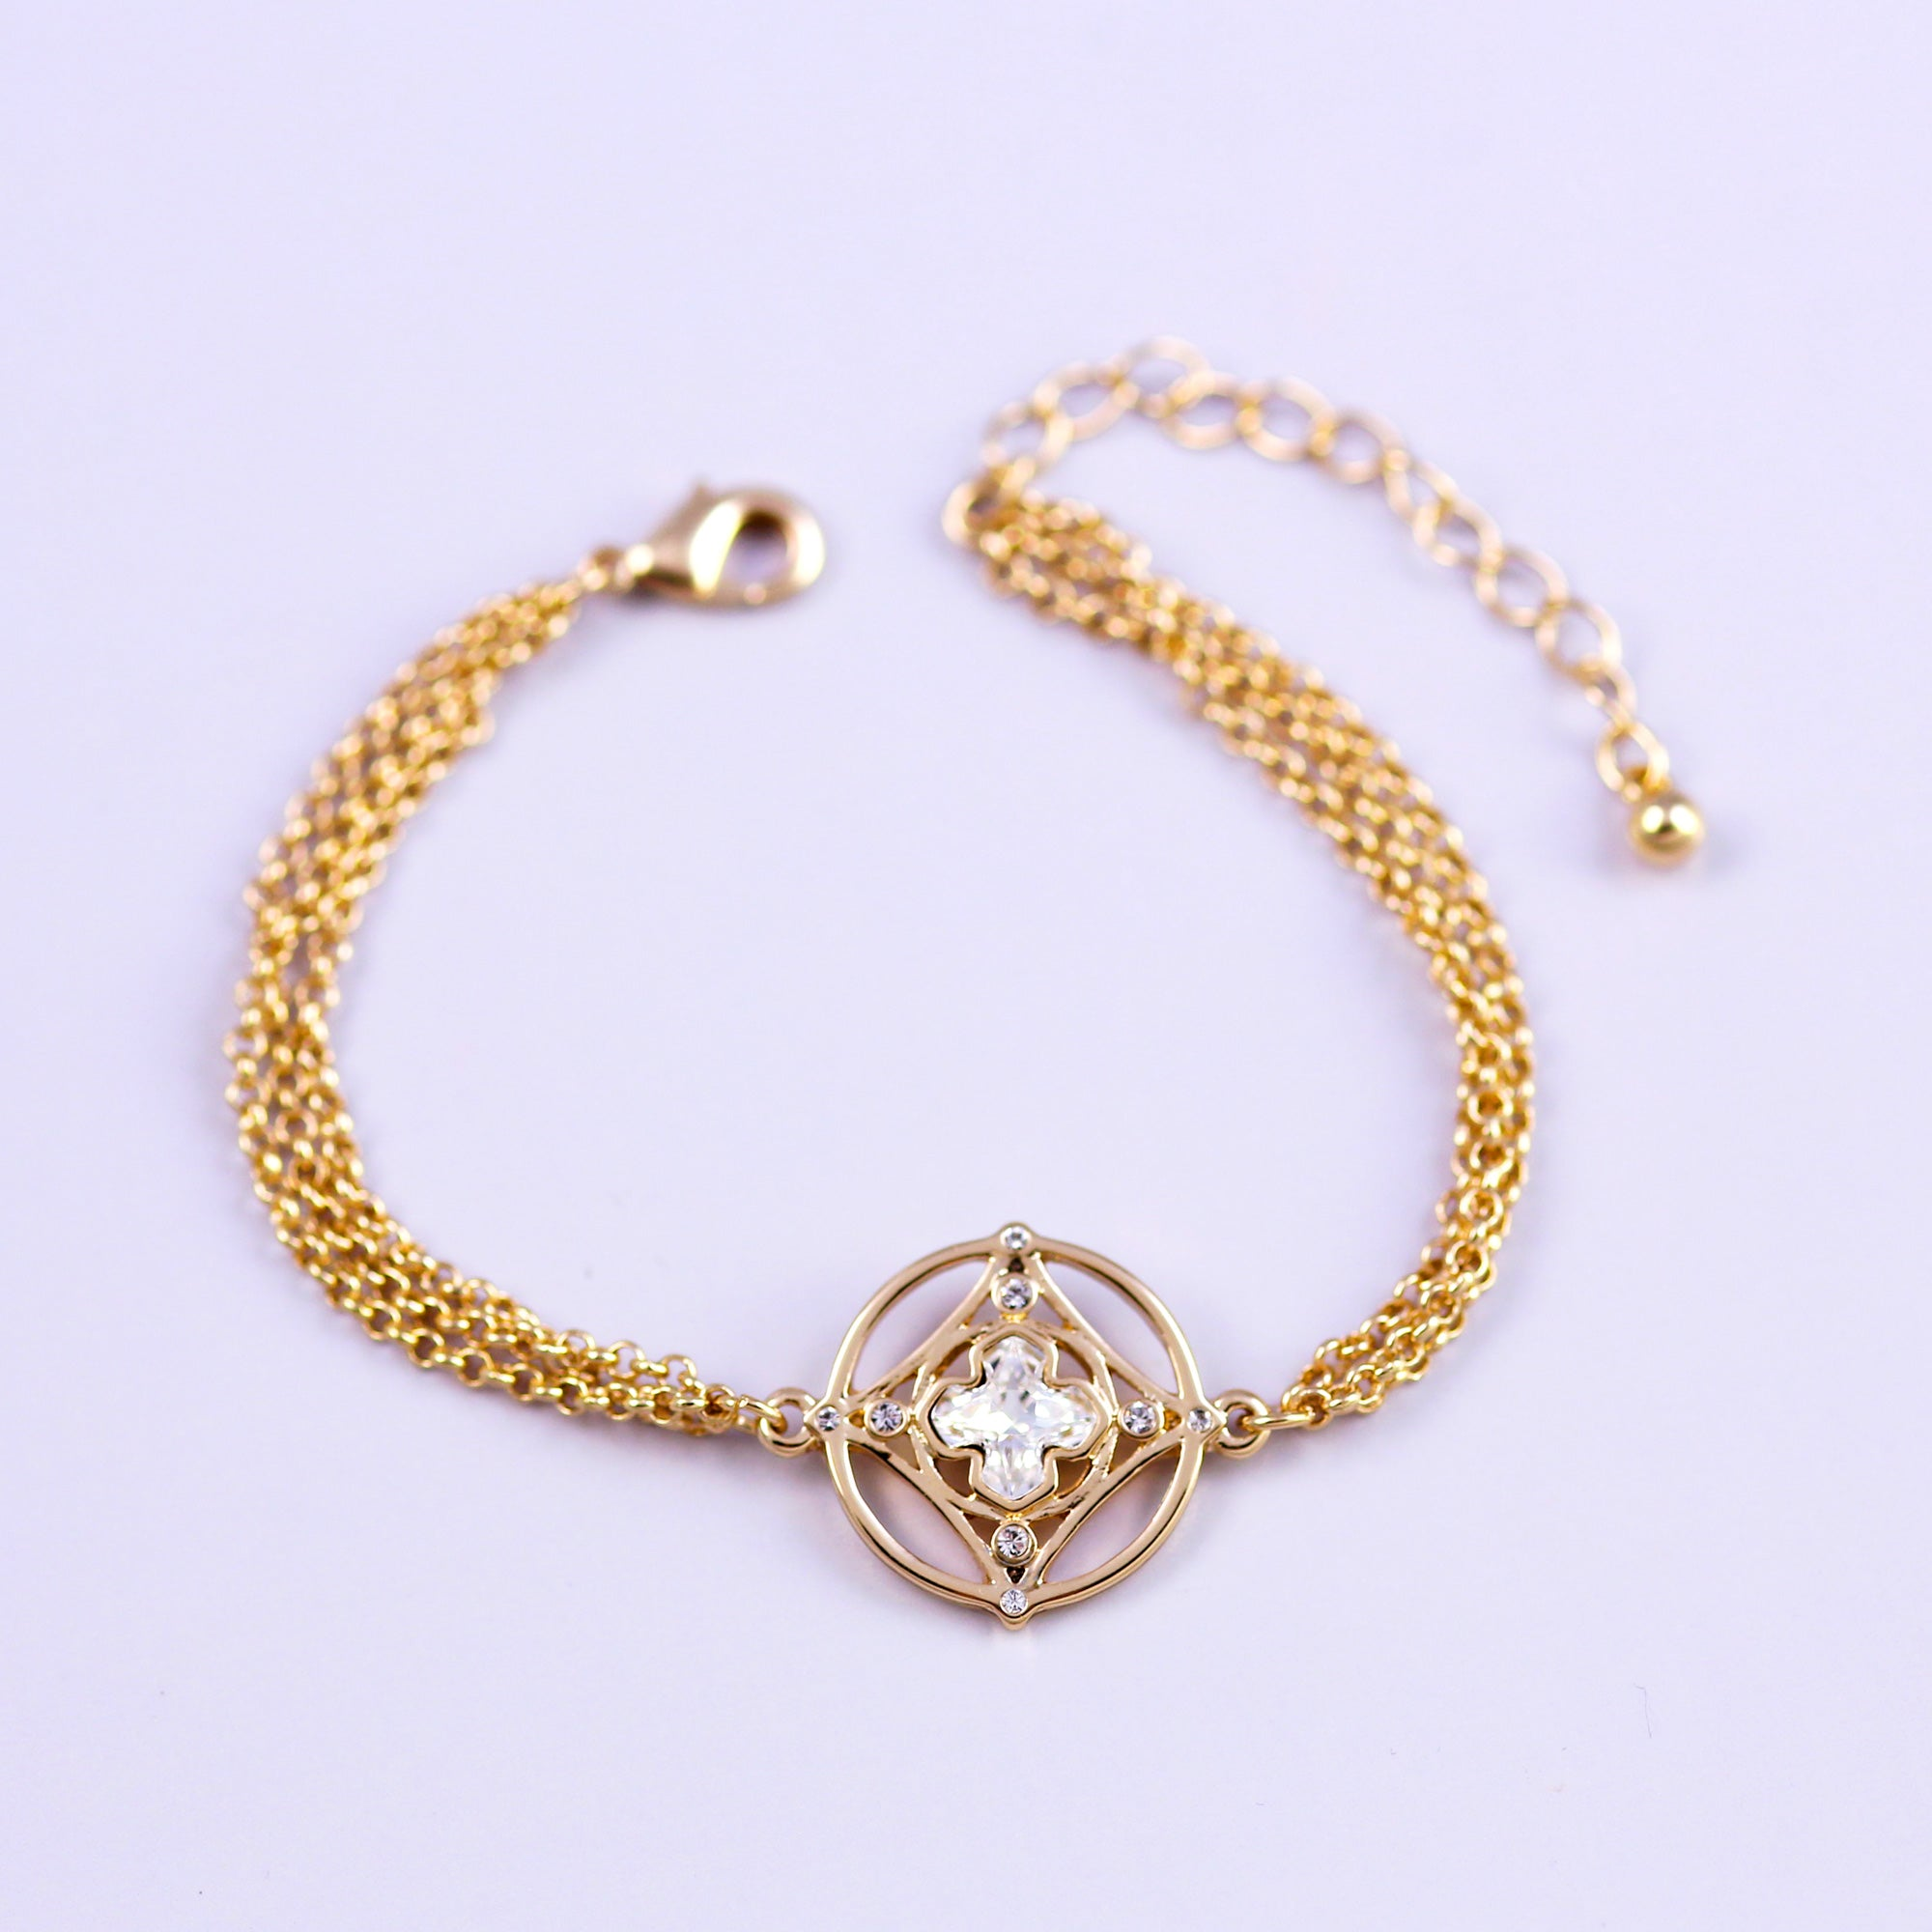 Gold & Crystal Greek Cross Bracelet